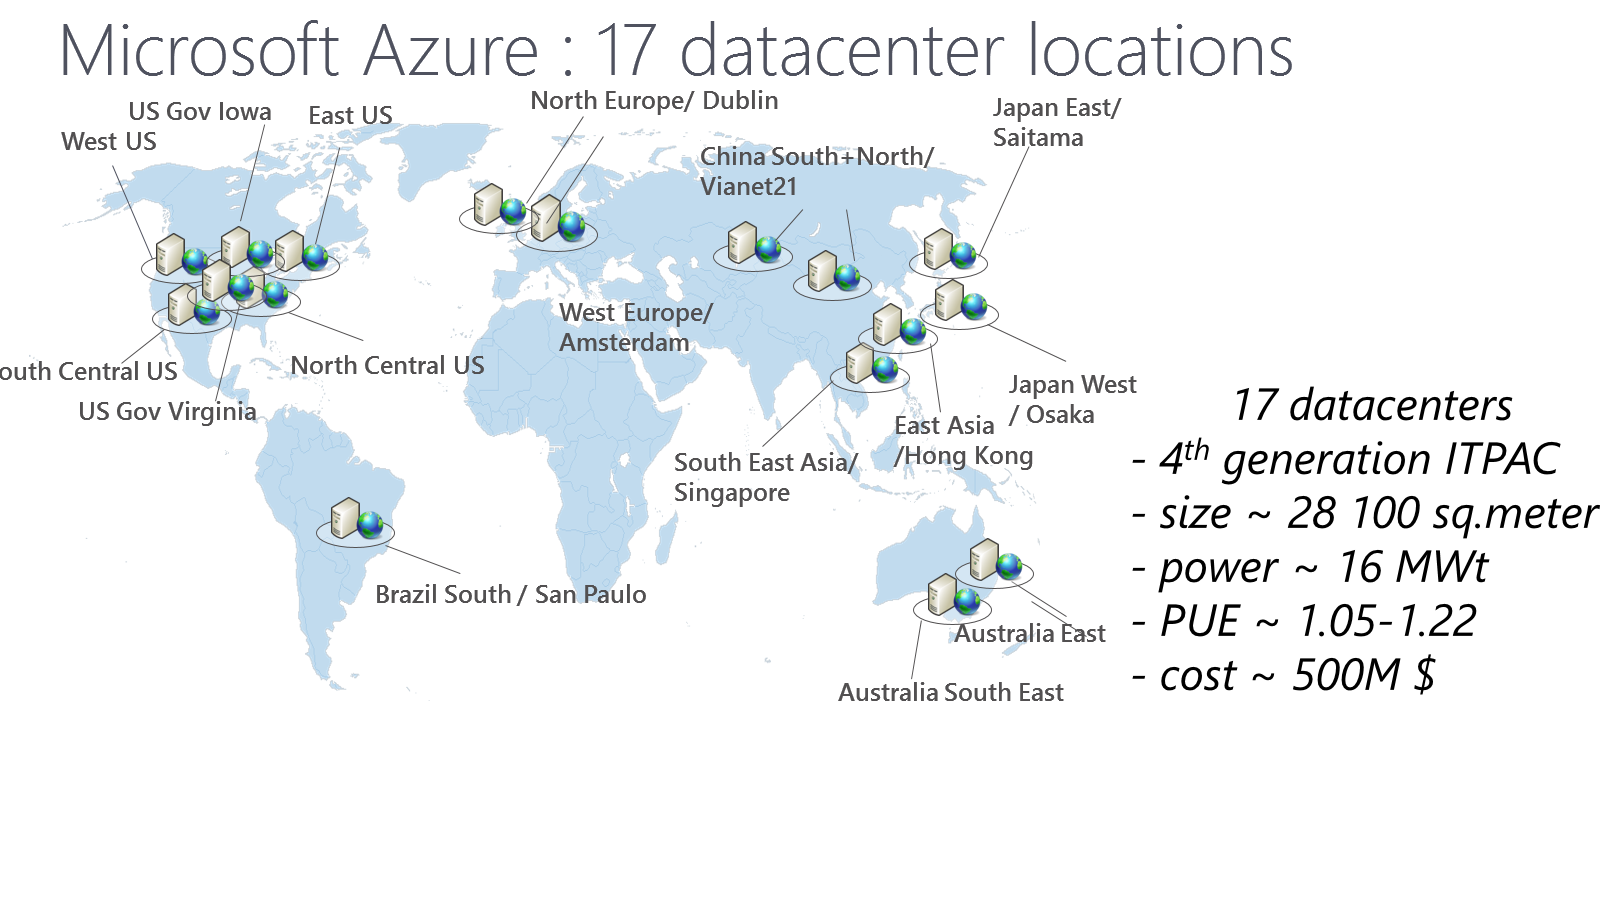 Microsoft Azure datacenter locations and CDN locations map